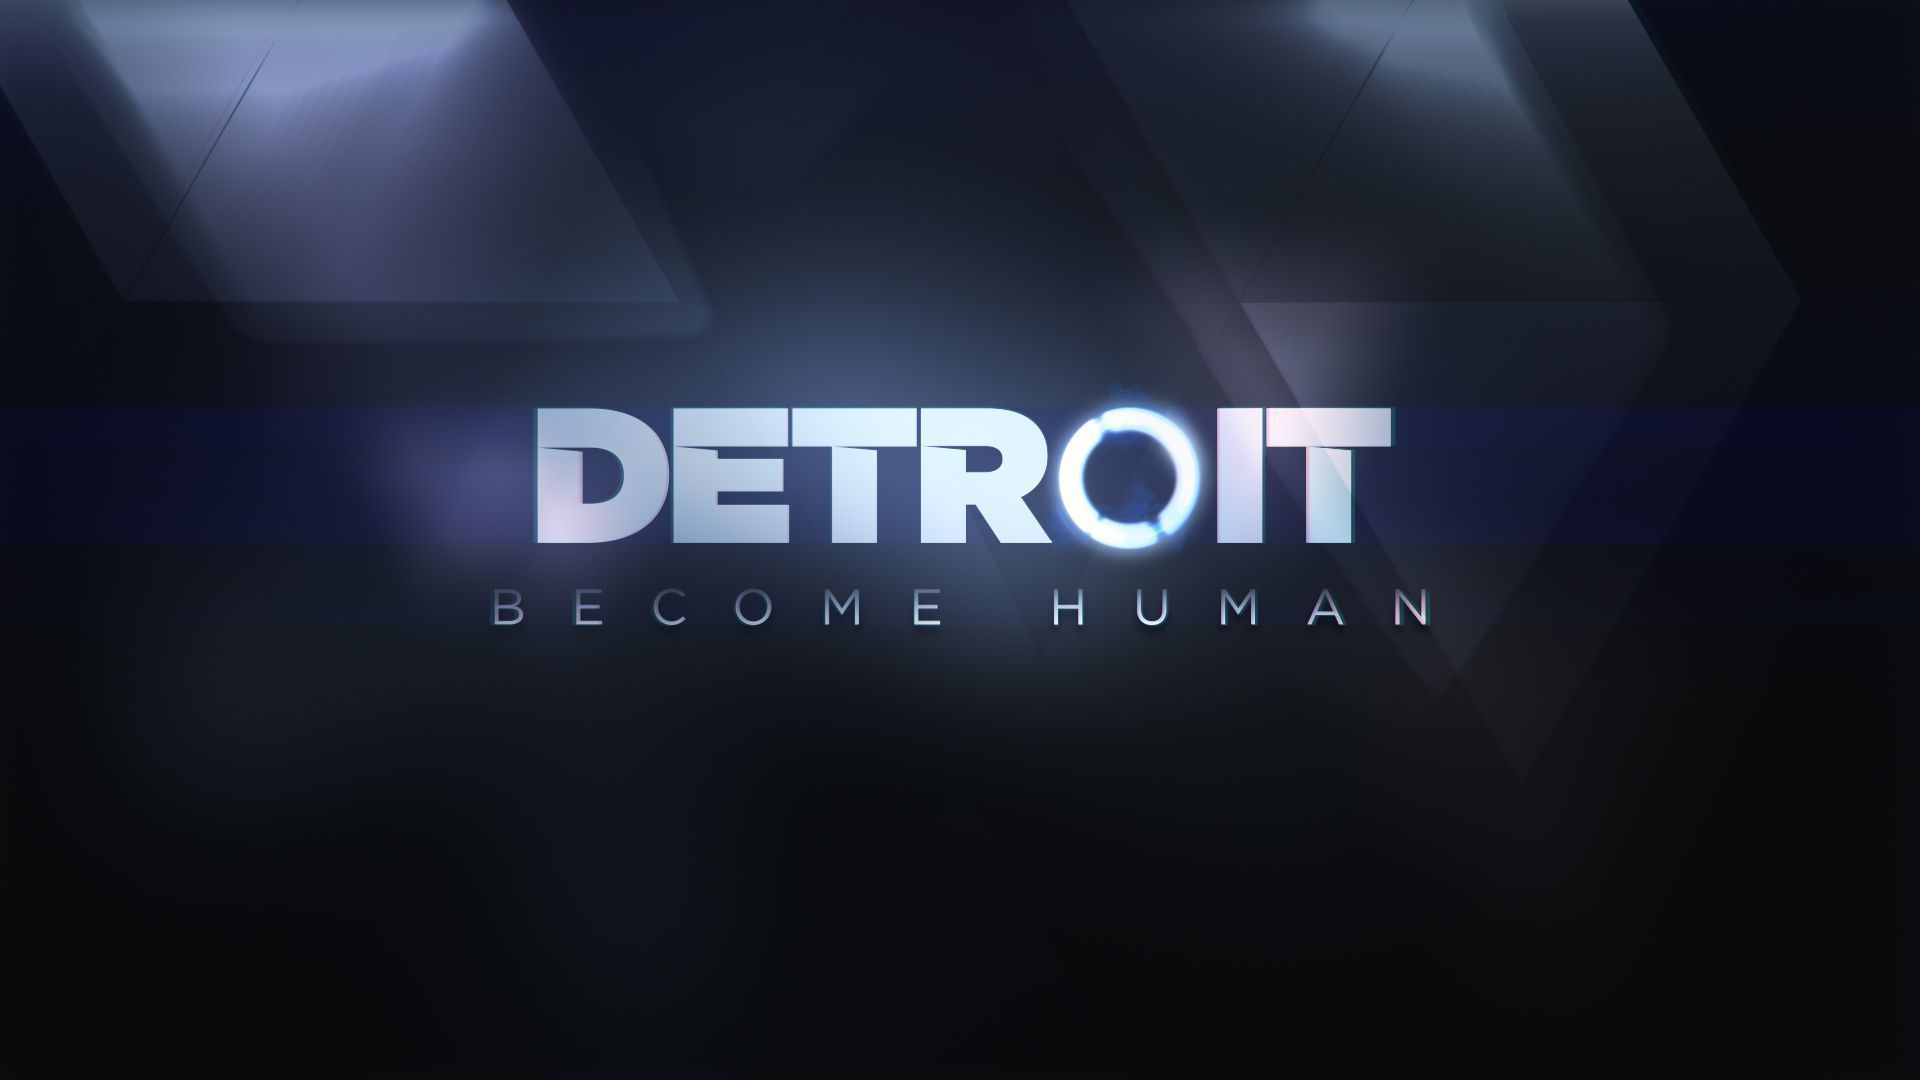 Detroit Become Human Images